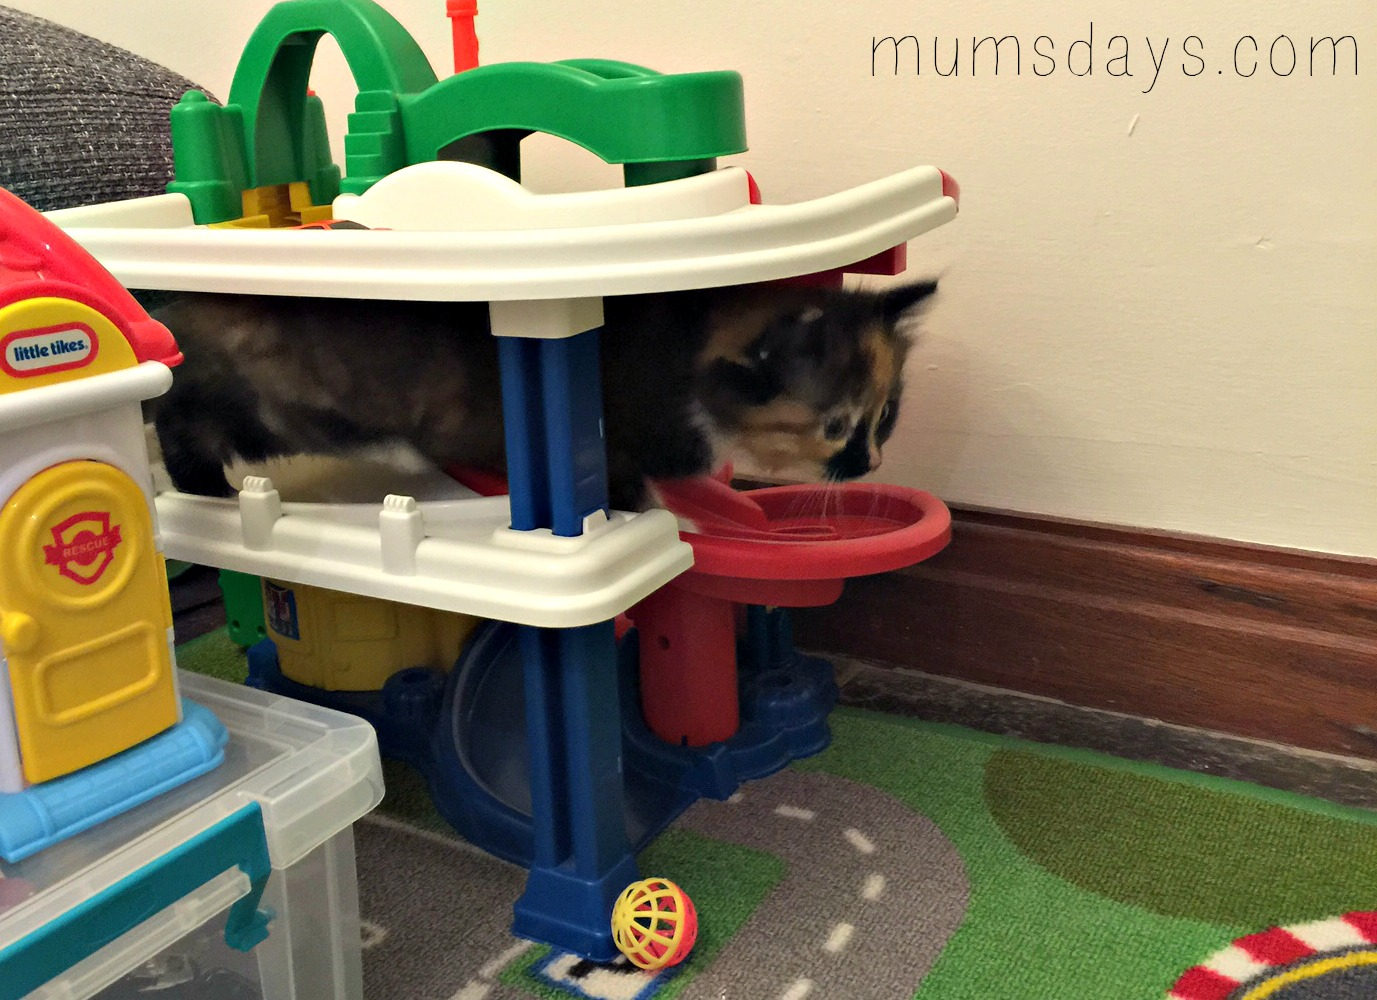 Meet the kittens - what you need and introducing a toddler to kittens! http://www.mumsdays.com/meet-the-kittens/